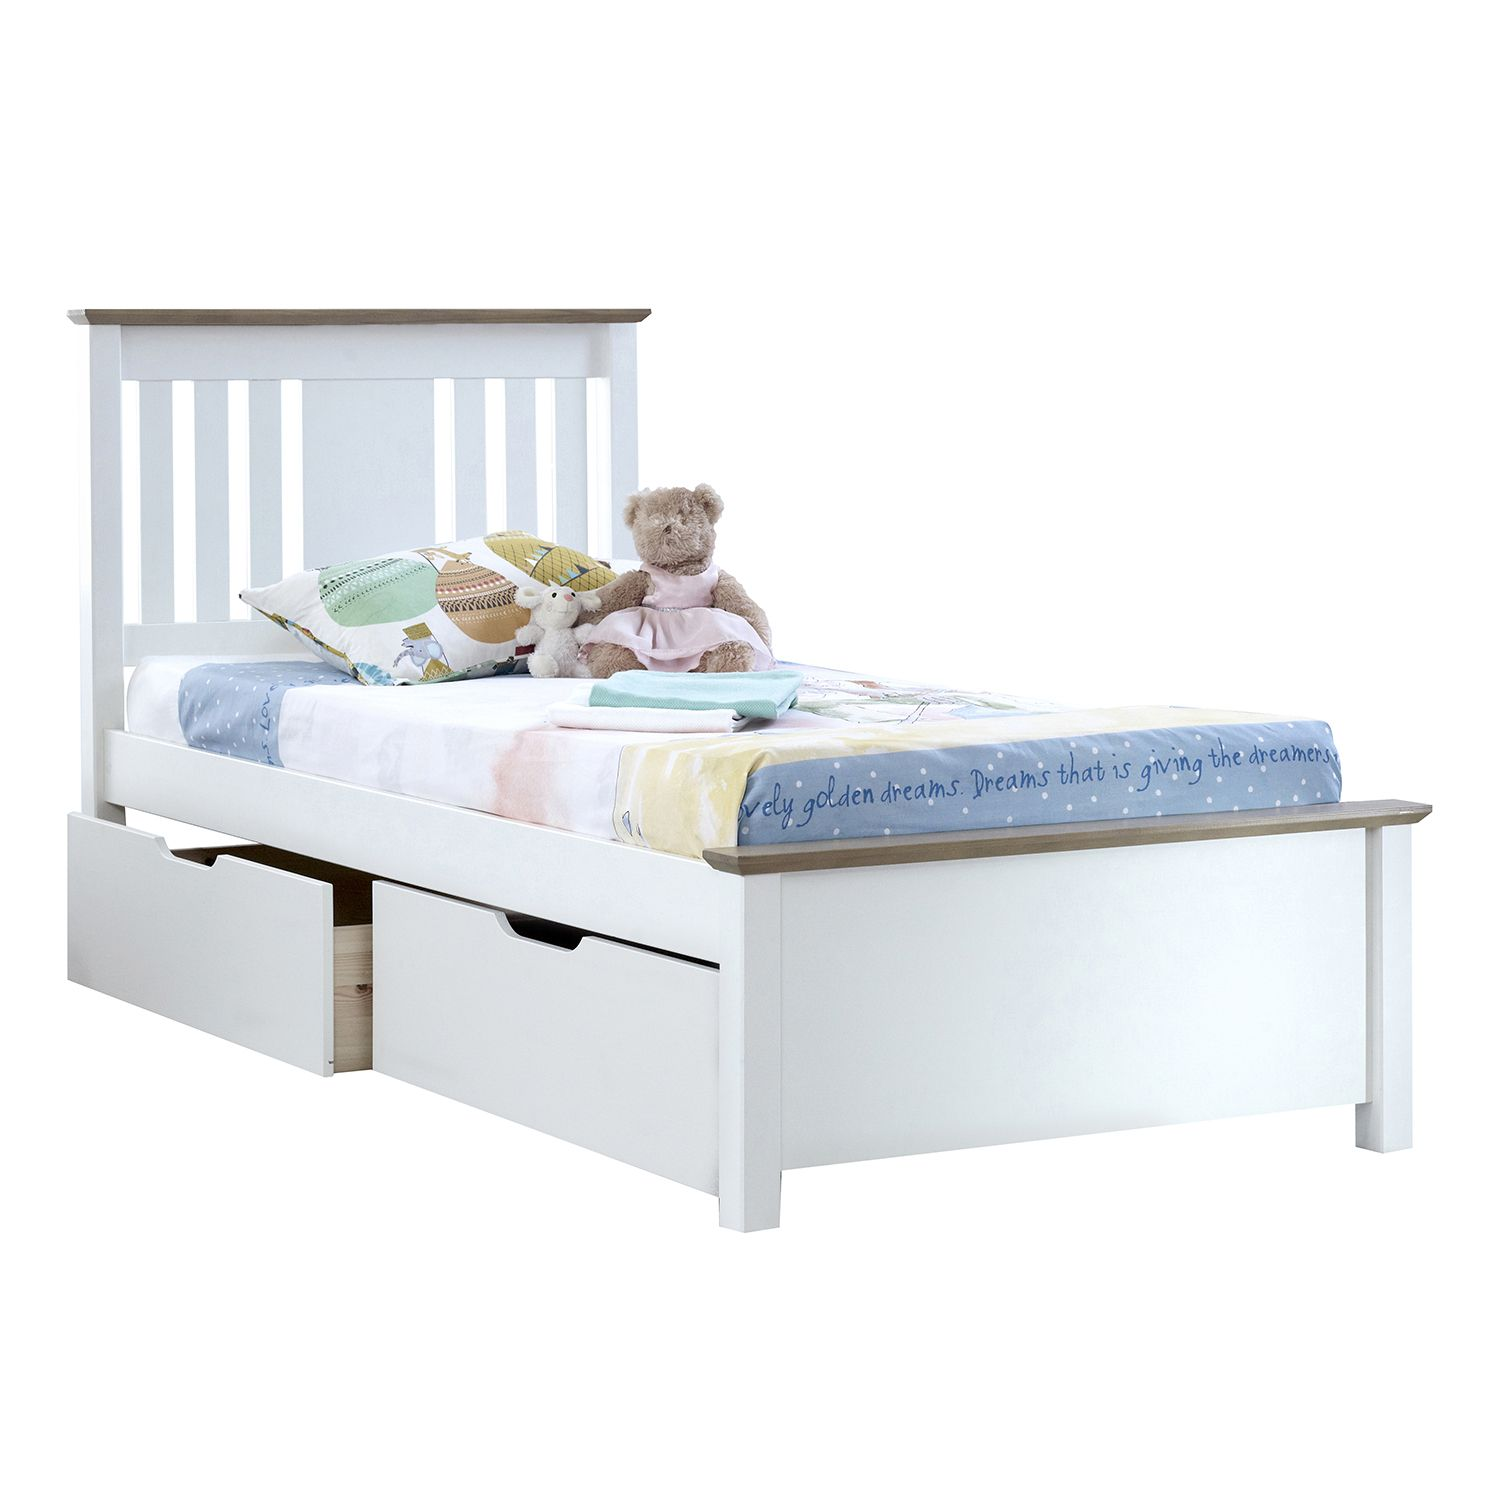 Chester Solo Storage Bed Frame | Retro bed, Tv beds and Storage beds